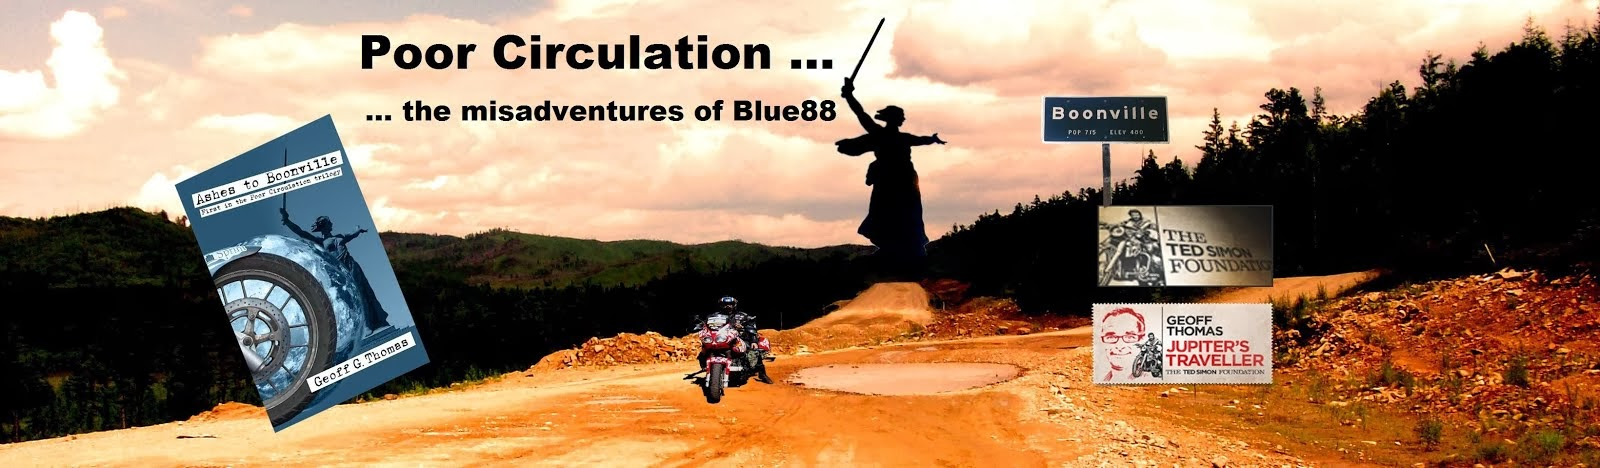 Poor Circulation .. the motorcycle misadventures of Blue88